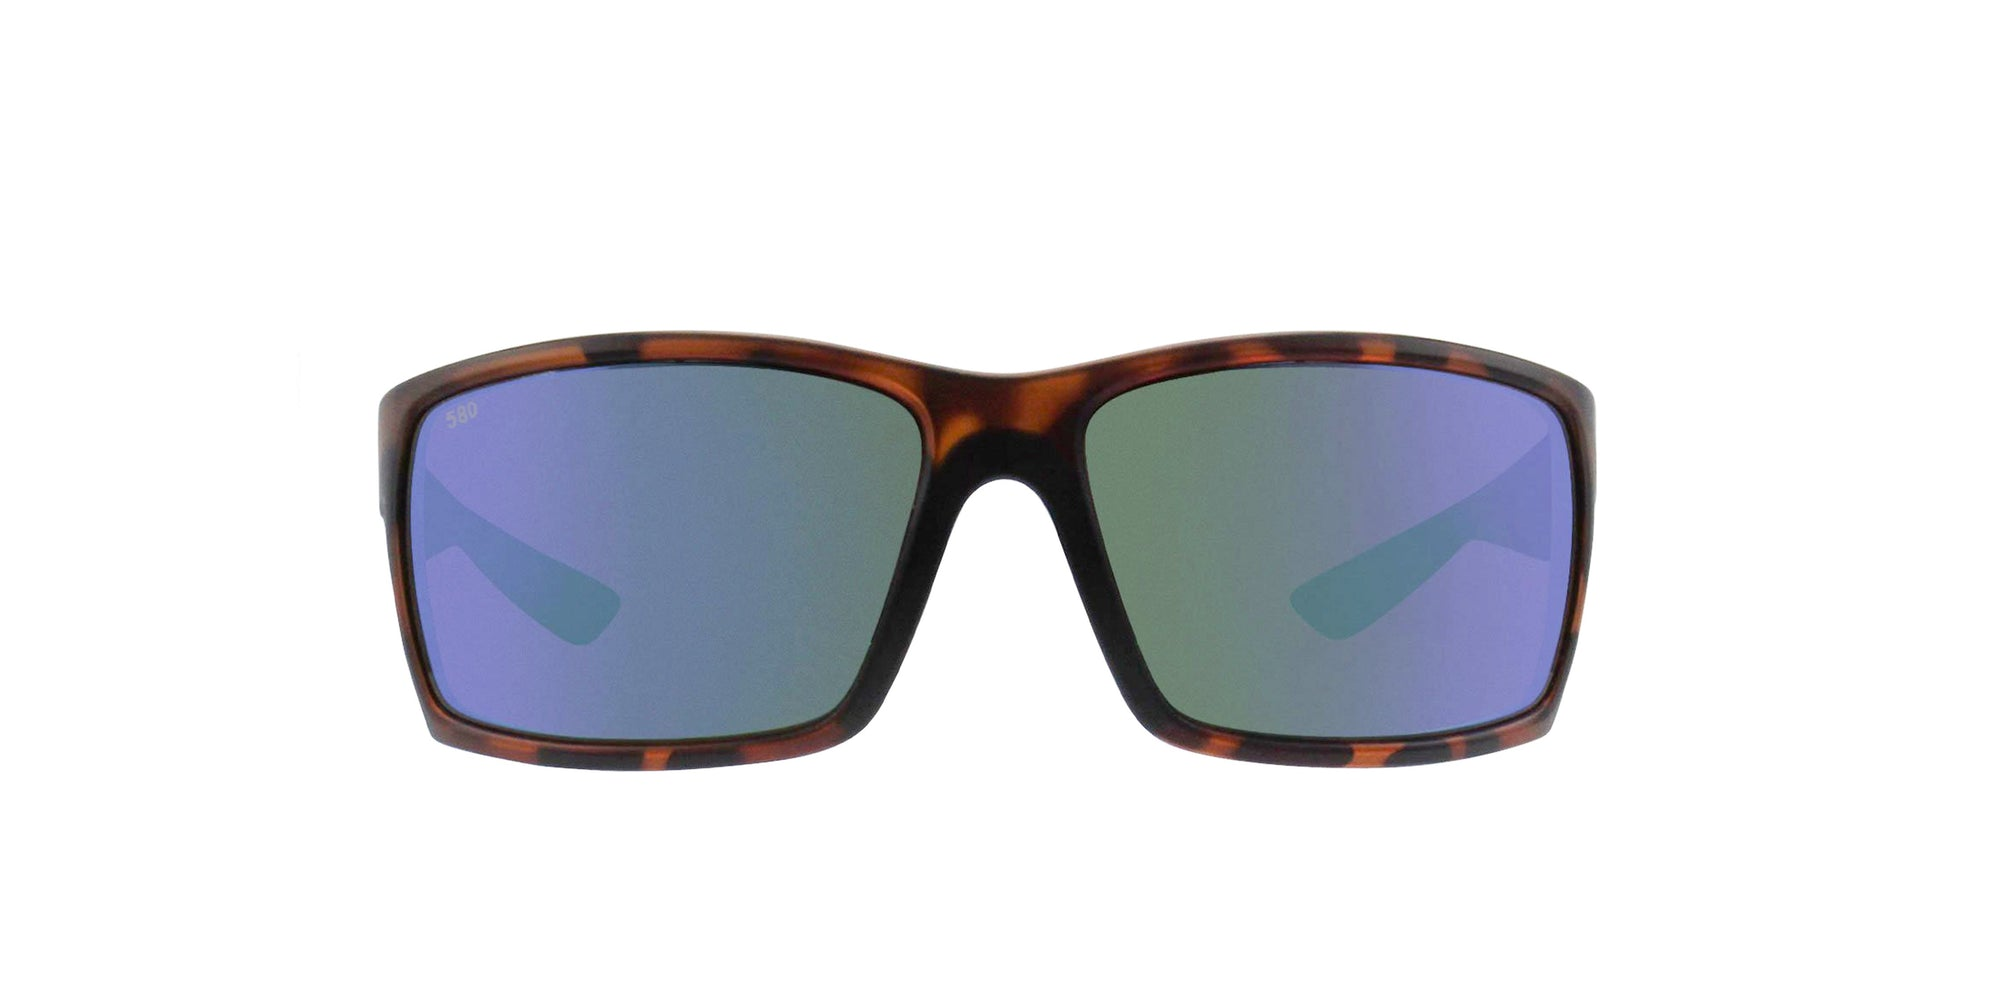 Costa Del Mar - Reefton Tortoise/Green Mirror Polarized Rectangular Men Sunglasses-Sunglasses-Designer Eyes